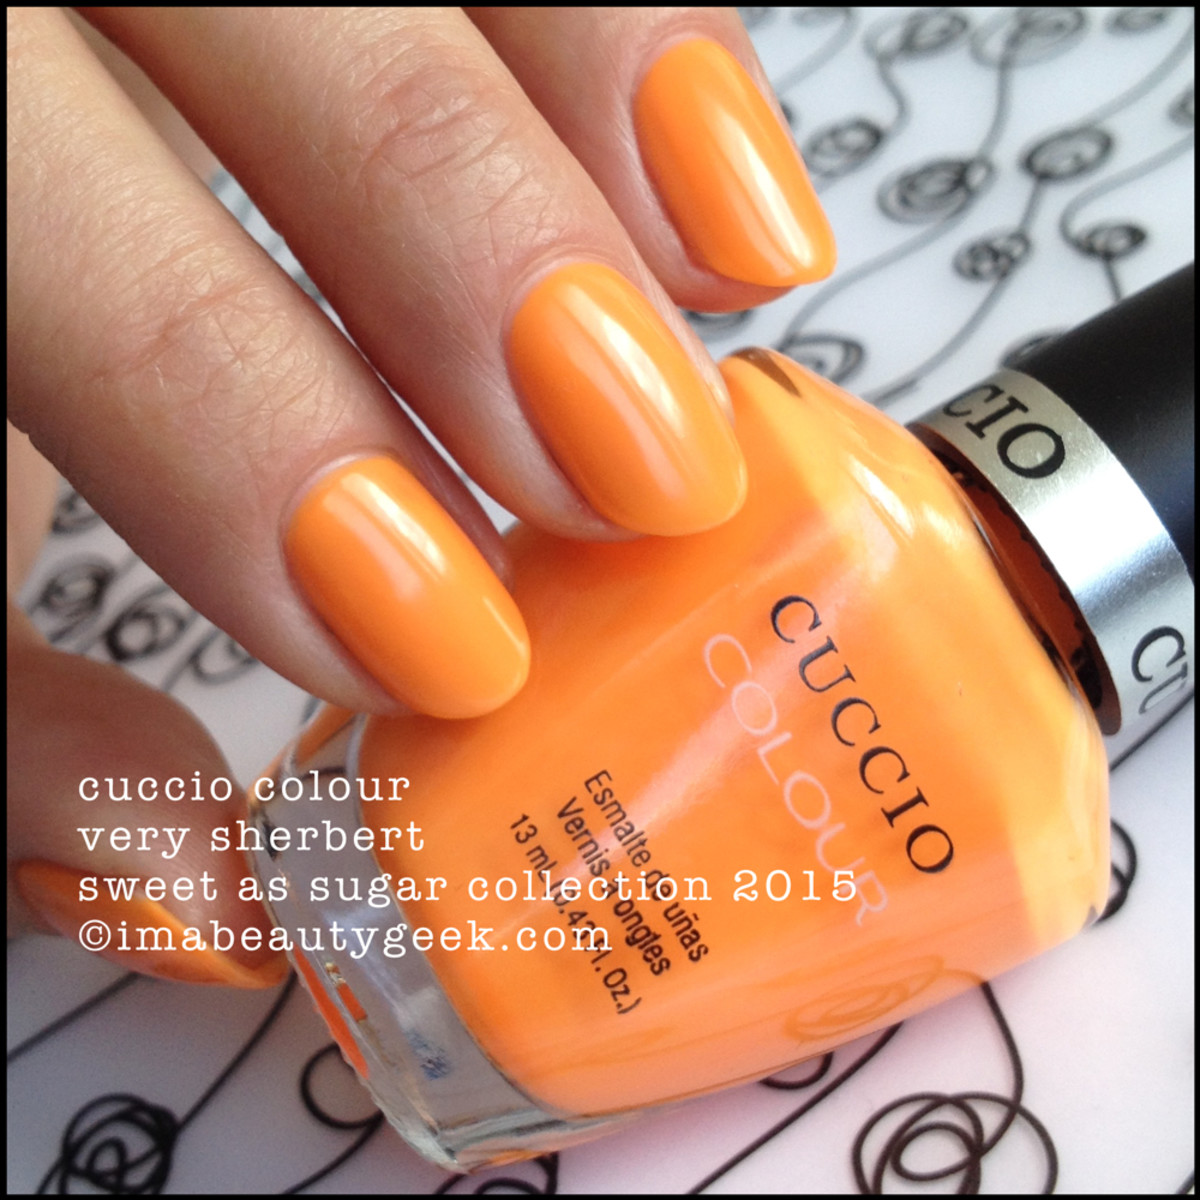 Cuccio Colour Very Sherbert Sweet as Sugar Collection 2015